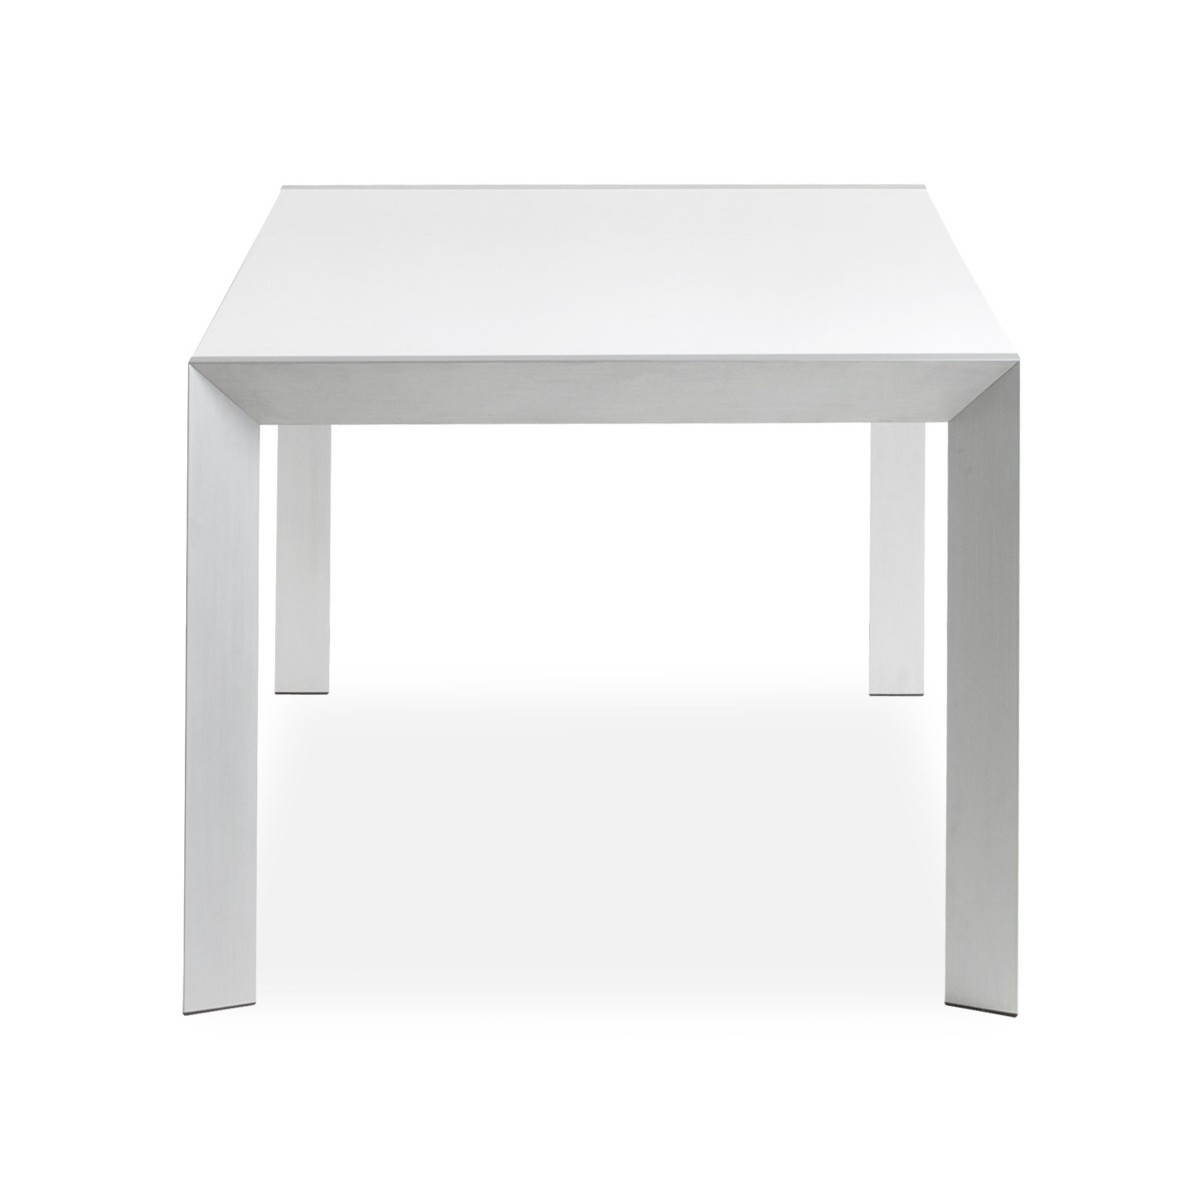 Table design rectangulaire avec rallonge fiona en bois - Table basse rectangulaire blanc laque ...